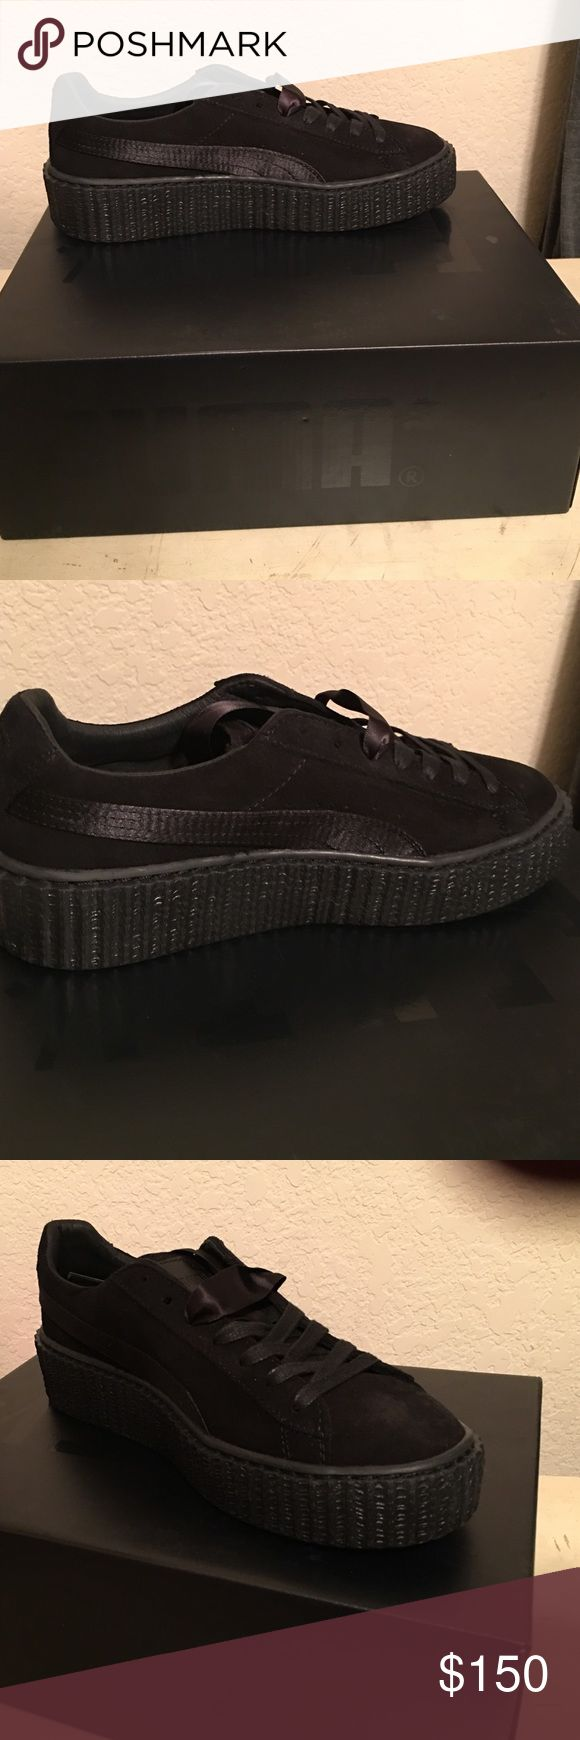 Fenty pumas Fenty by Rihanna satin suede creepers black Puma Shoes Sneakers